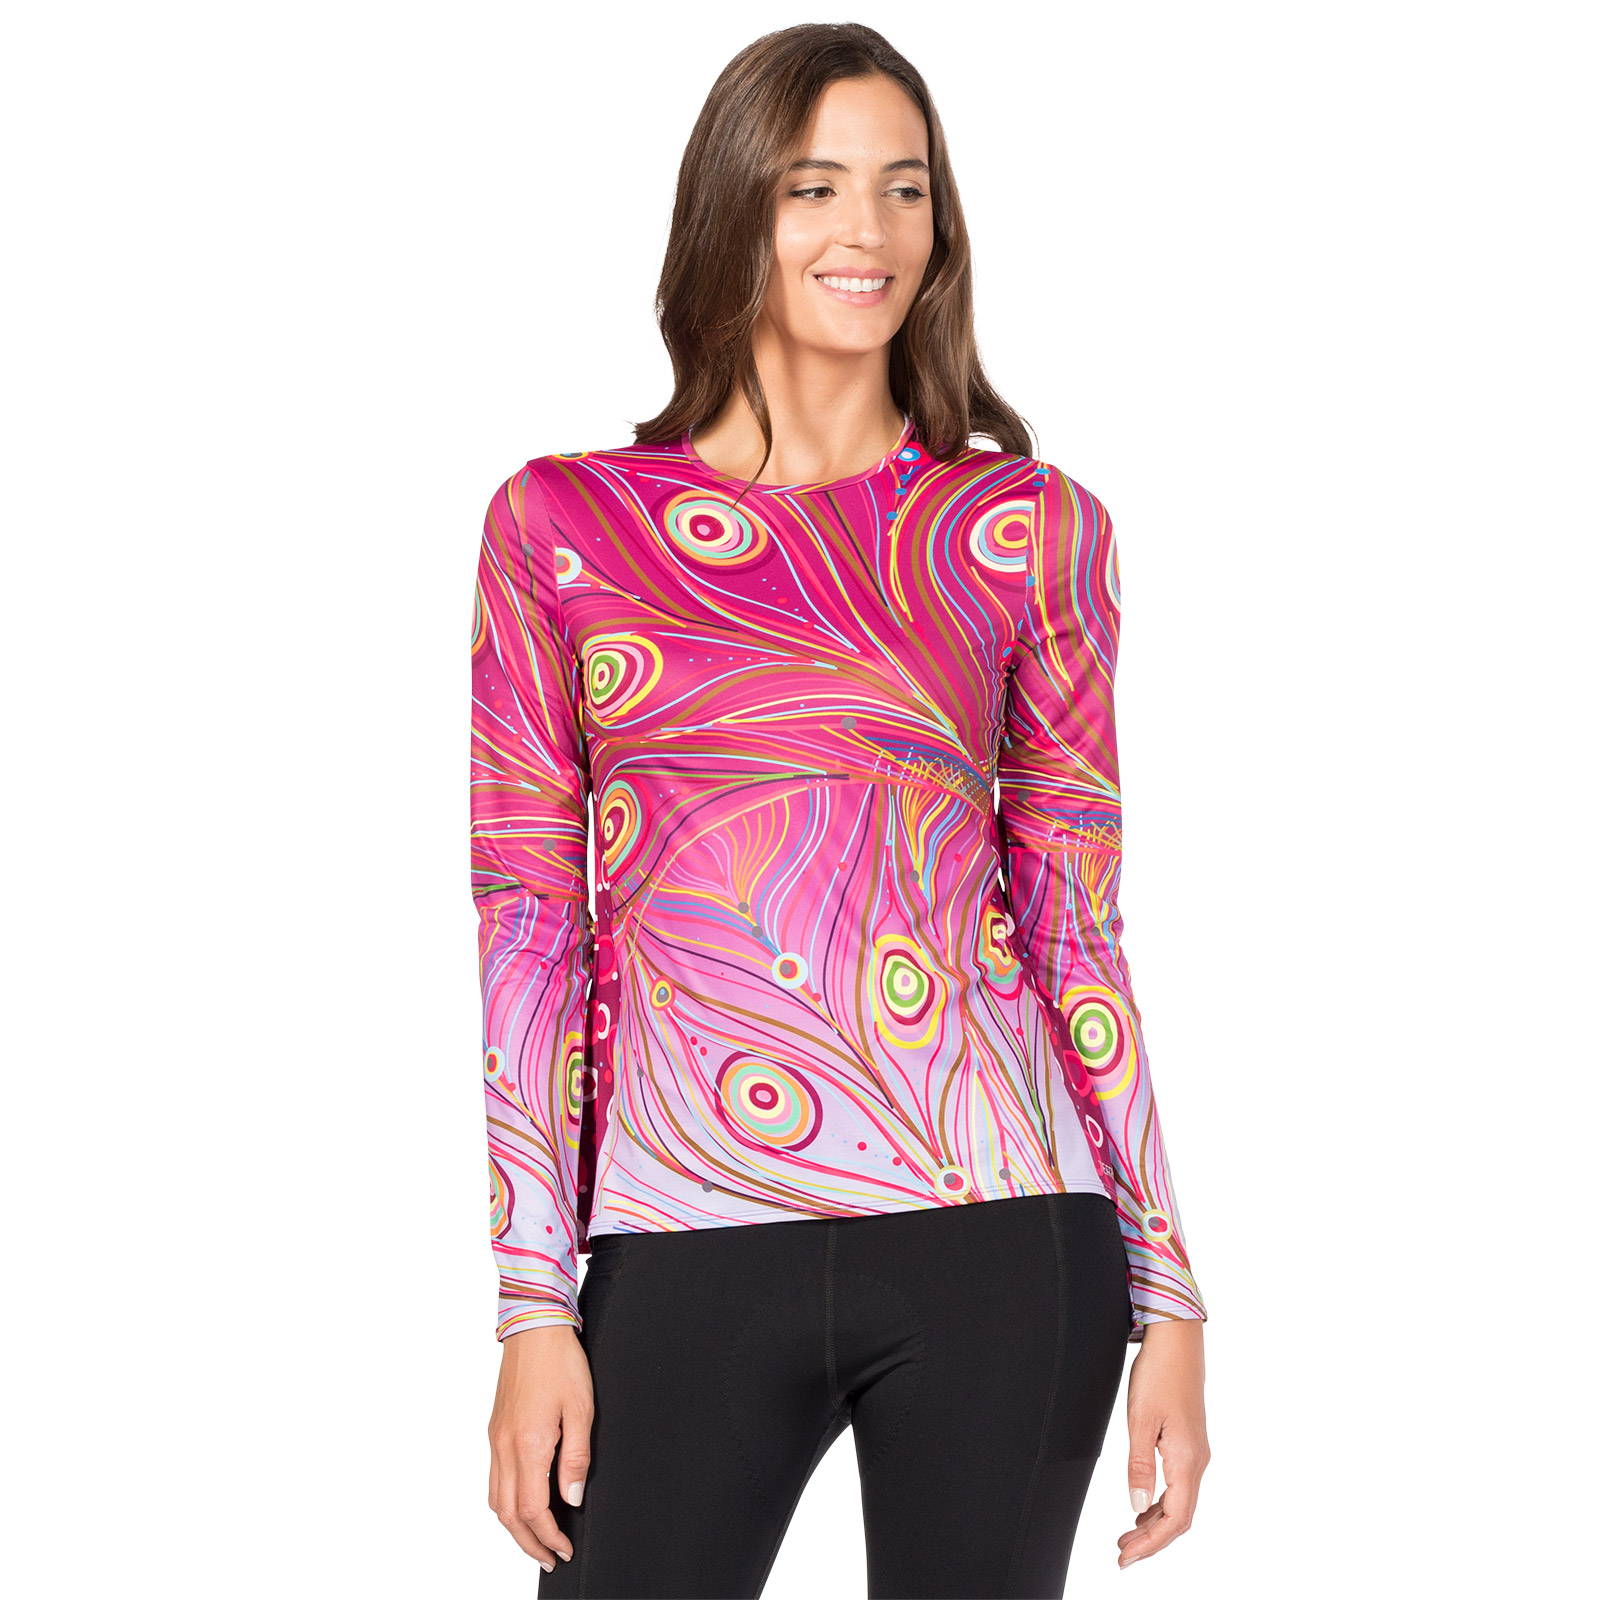 Terry Soleil Flow Long Sleeve Top - Peacock - Women s Cycling ... aba147607